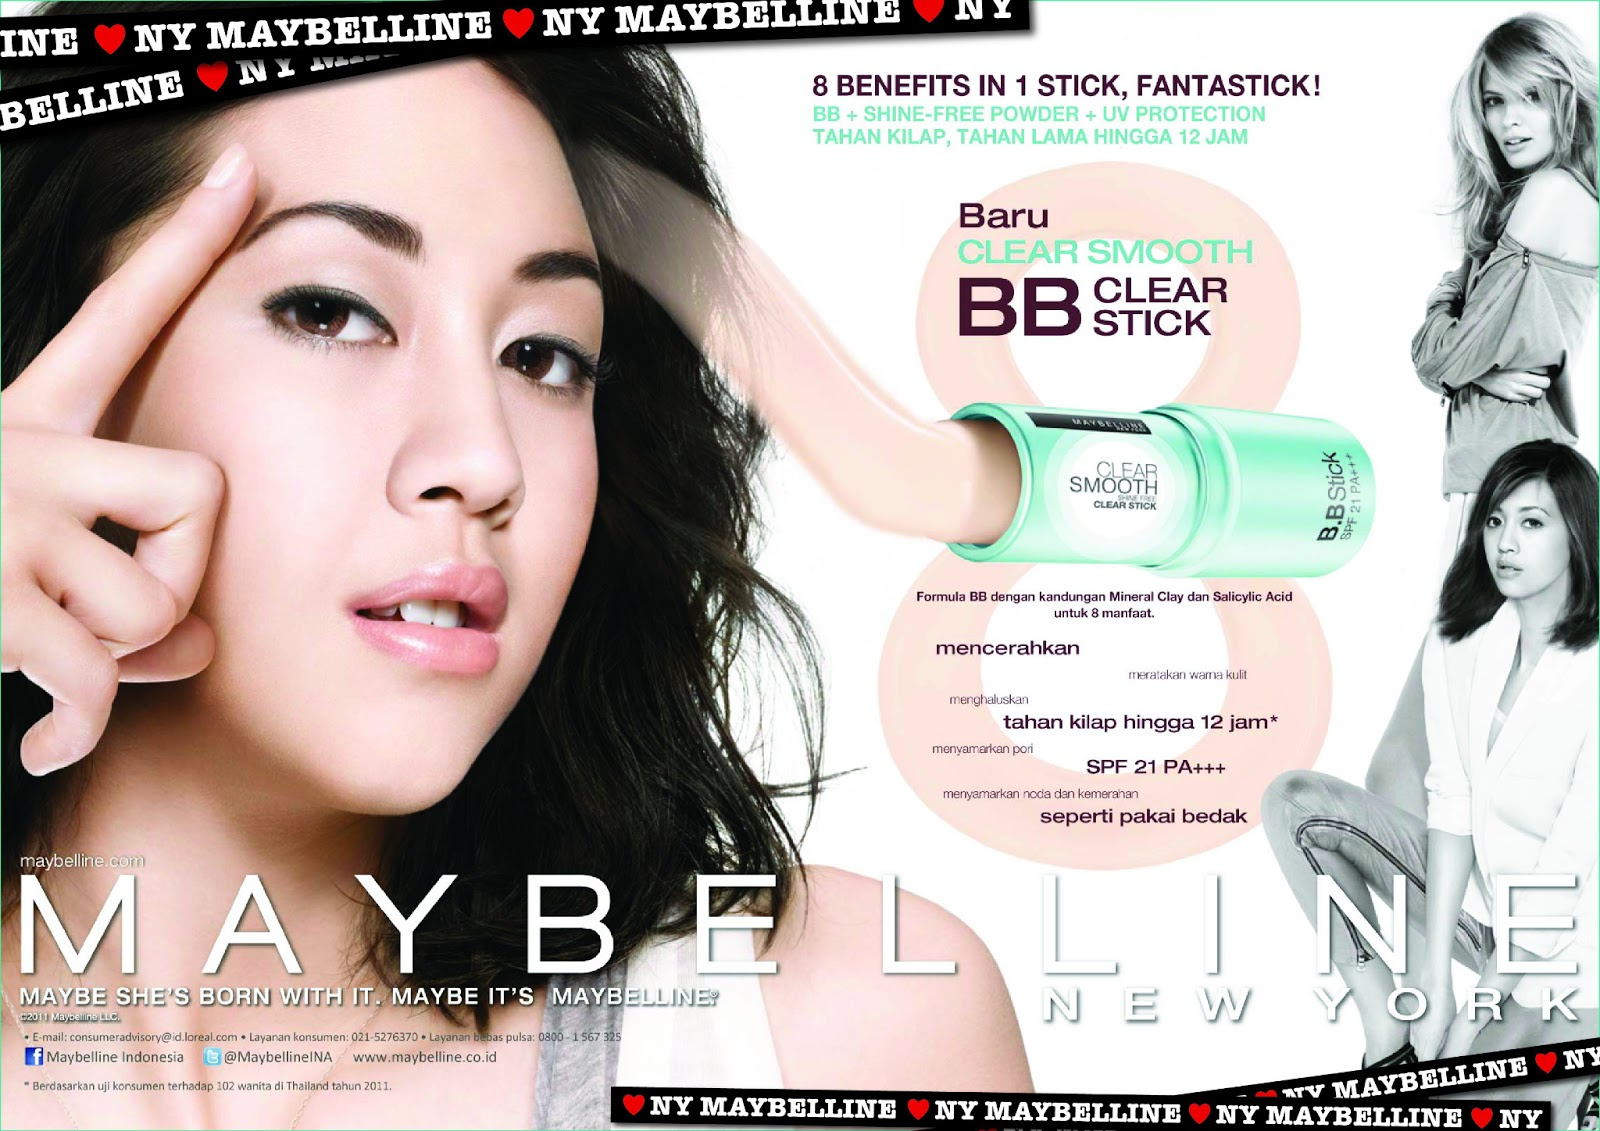 maybelline essay Maybelline - cosmetics essay example the maybelline company was created by new york chemist t - maybelline introduction.